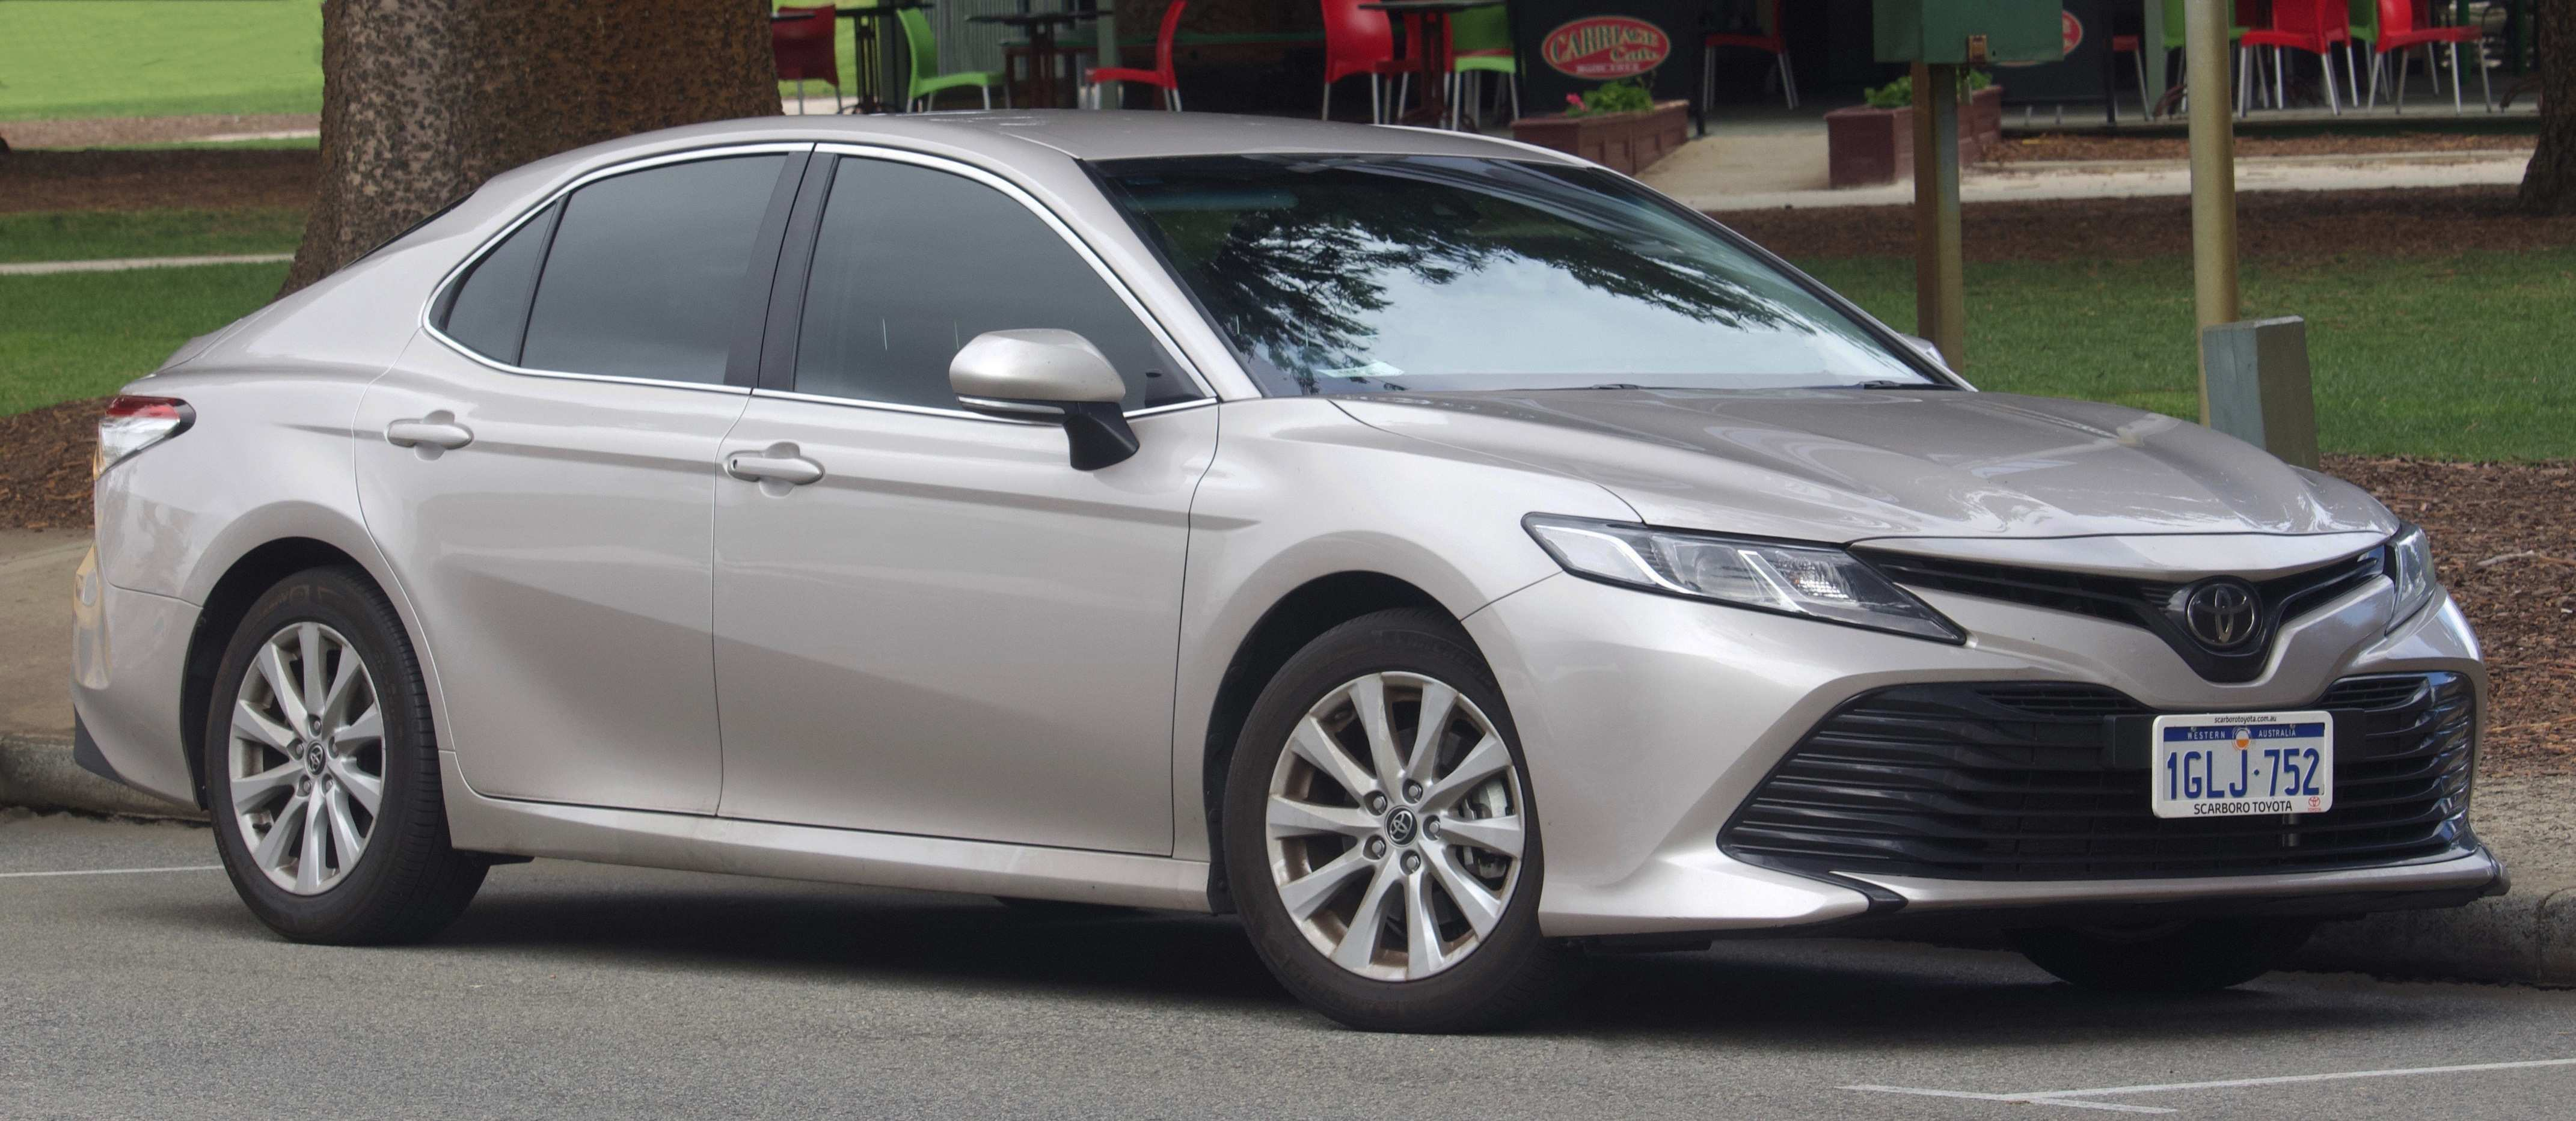 56 The Best 2020 Toyota Camry Se Hybrid Release